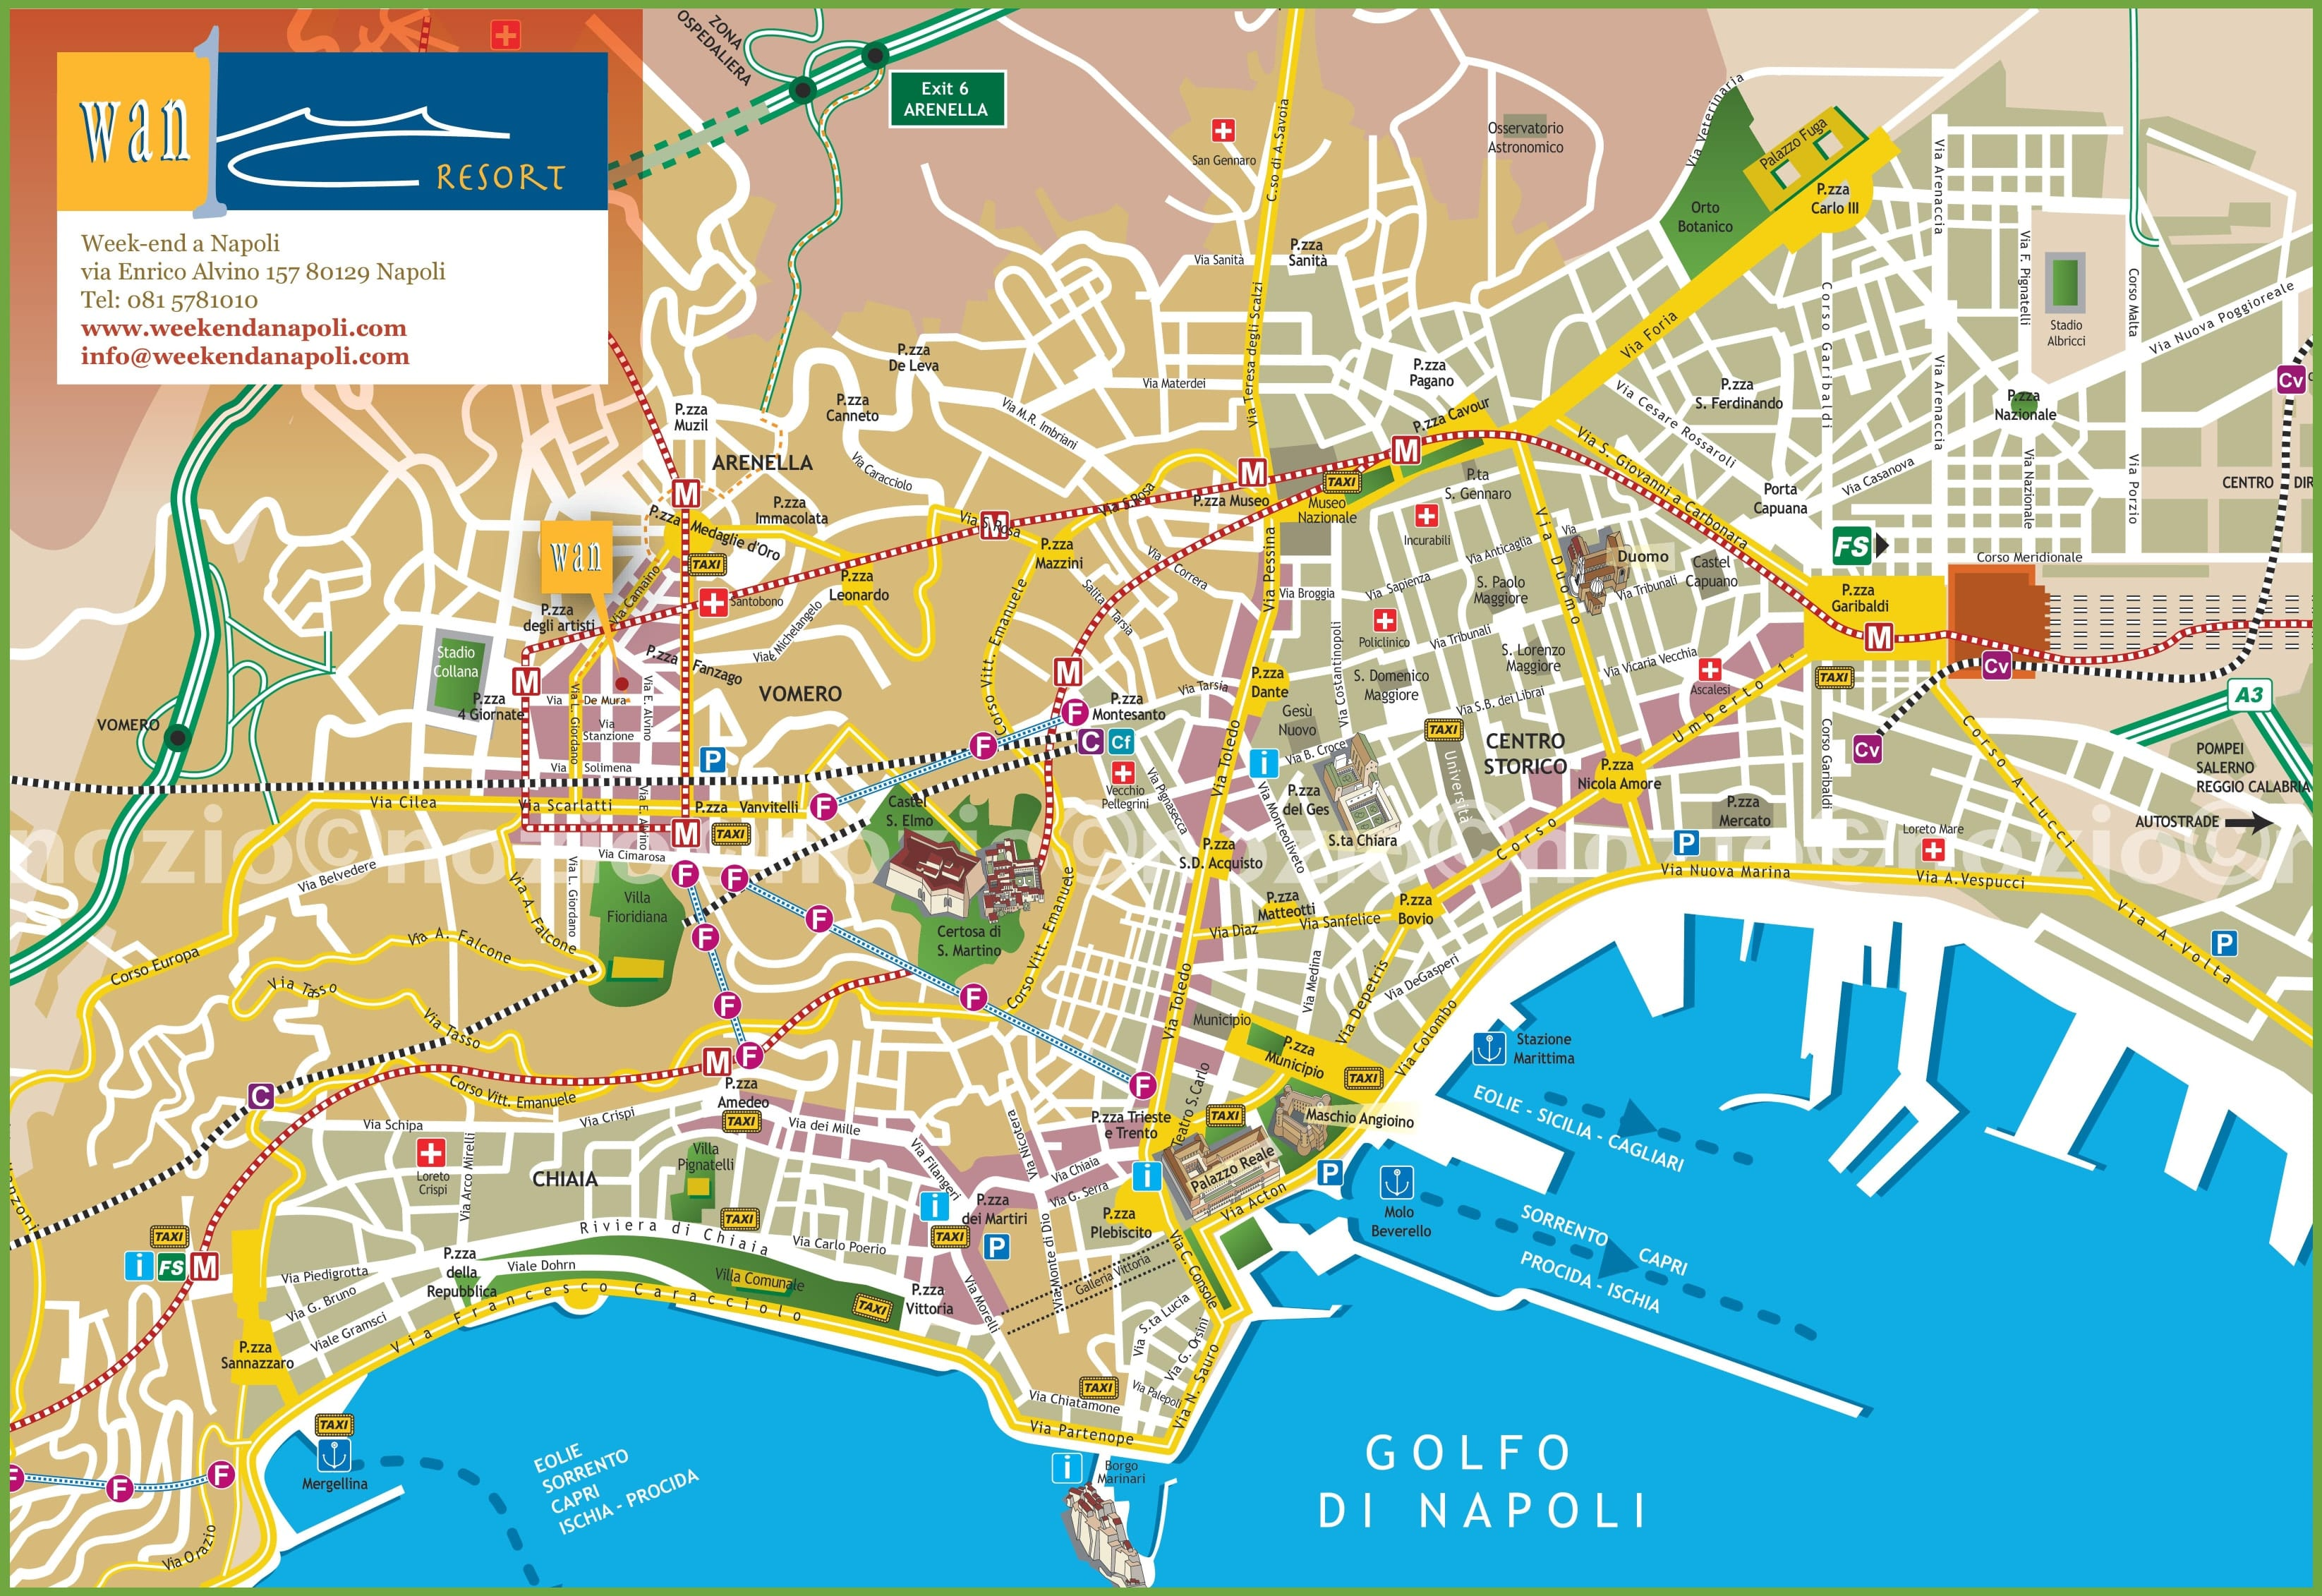 Buses from Naples Airport with Bus Routes and Times